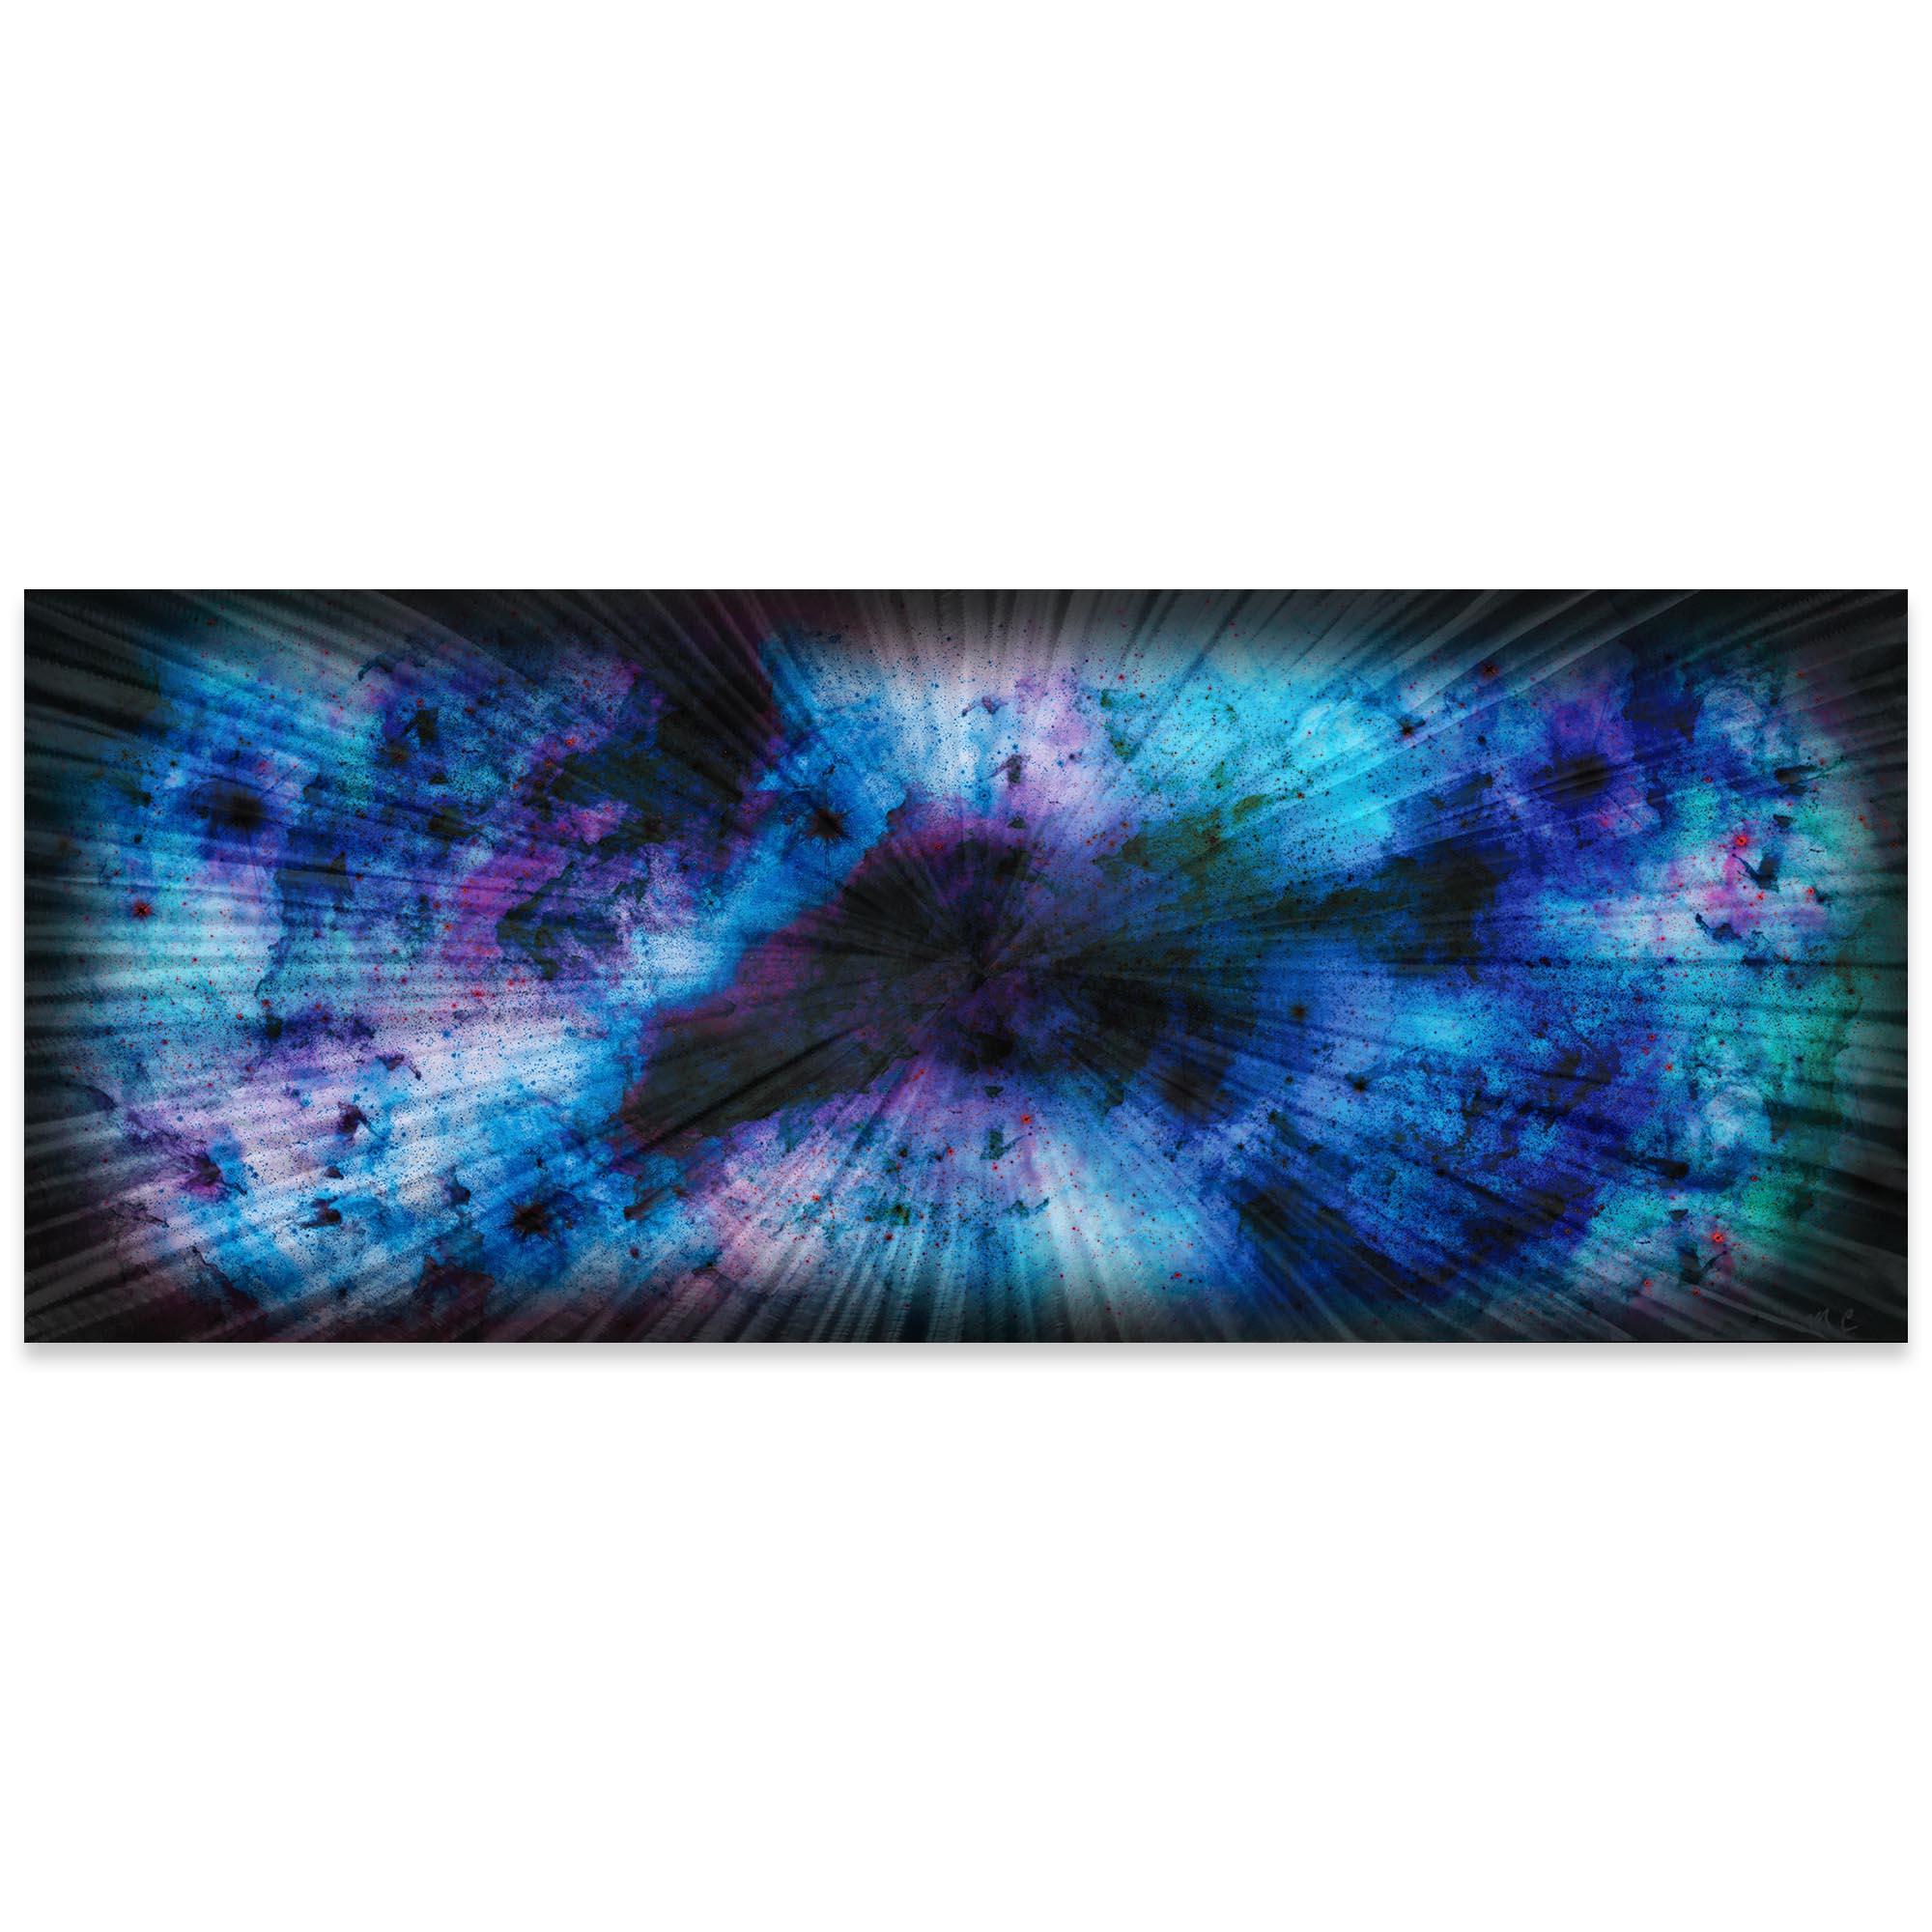 Helena Martin 'Blue Nebula' 60in x 24in Original Abstract Art on Ground and Colored Metal